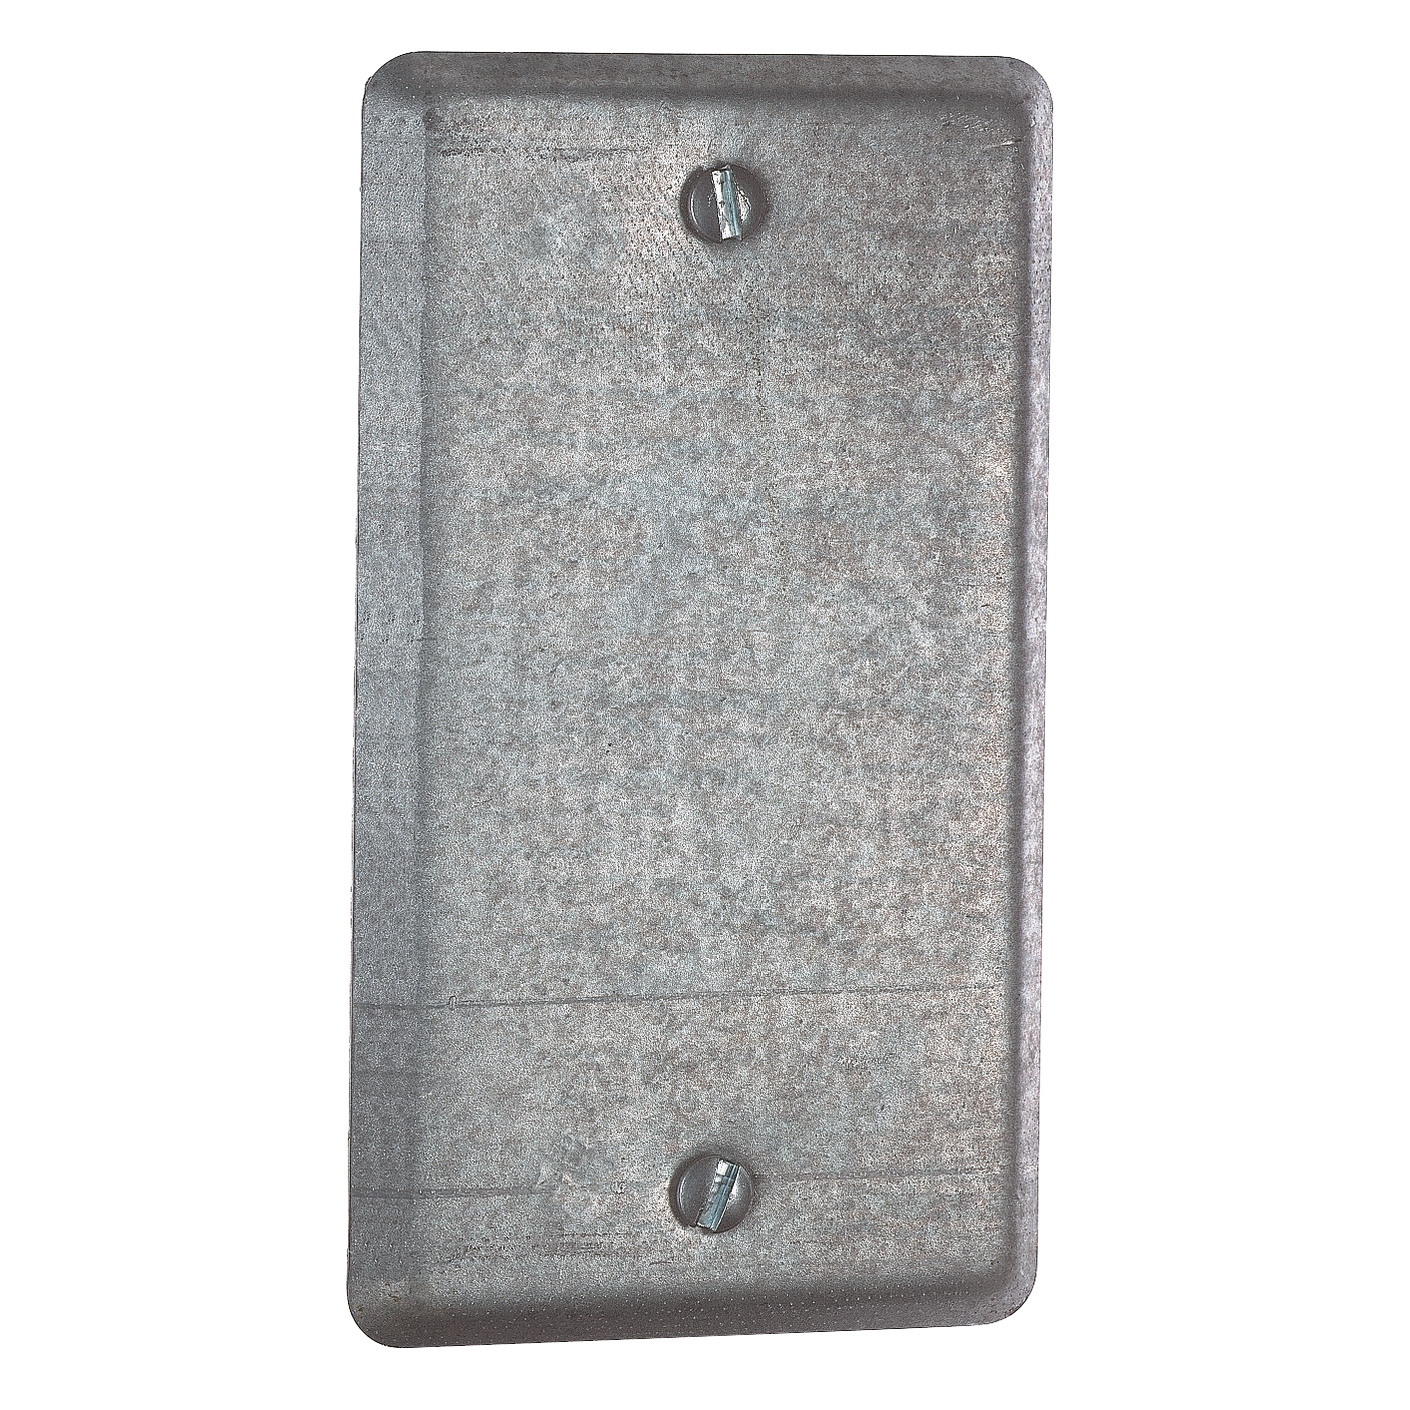 Steel City,58-C-1,Steel City® 58-C-1 Blank Utility Outlet Box Cover, 4 in L x 2-1/8 in W, Steel